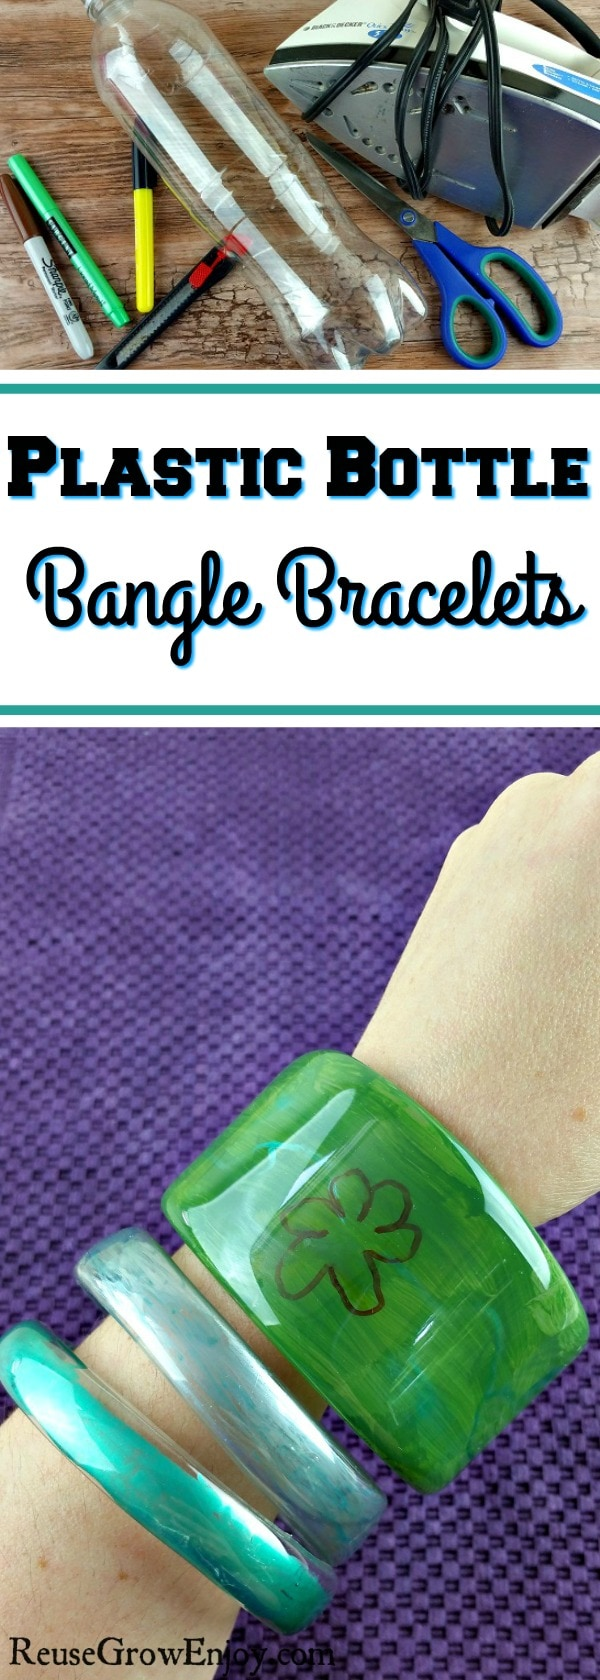 Have some plastic bottles? Check out this cute and easy DIY Plastic Bottle Bangle Bracelets!